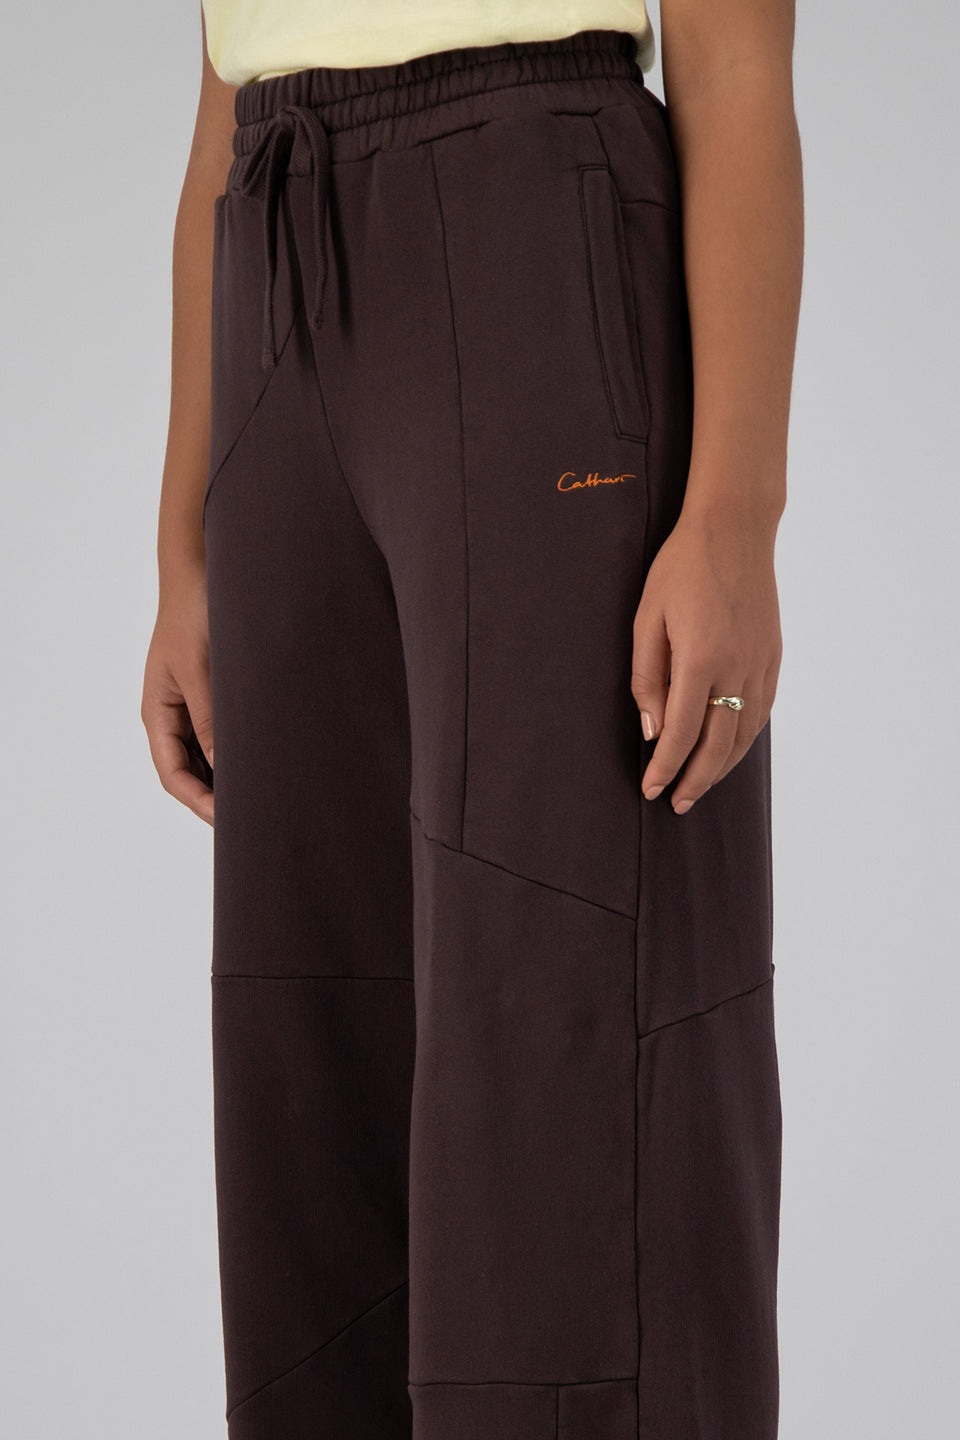 Deconstructed Lounge Pants Mid-Century Brown